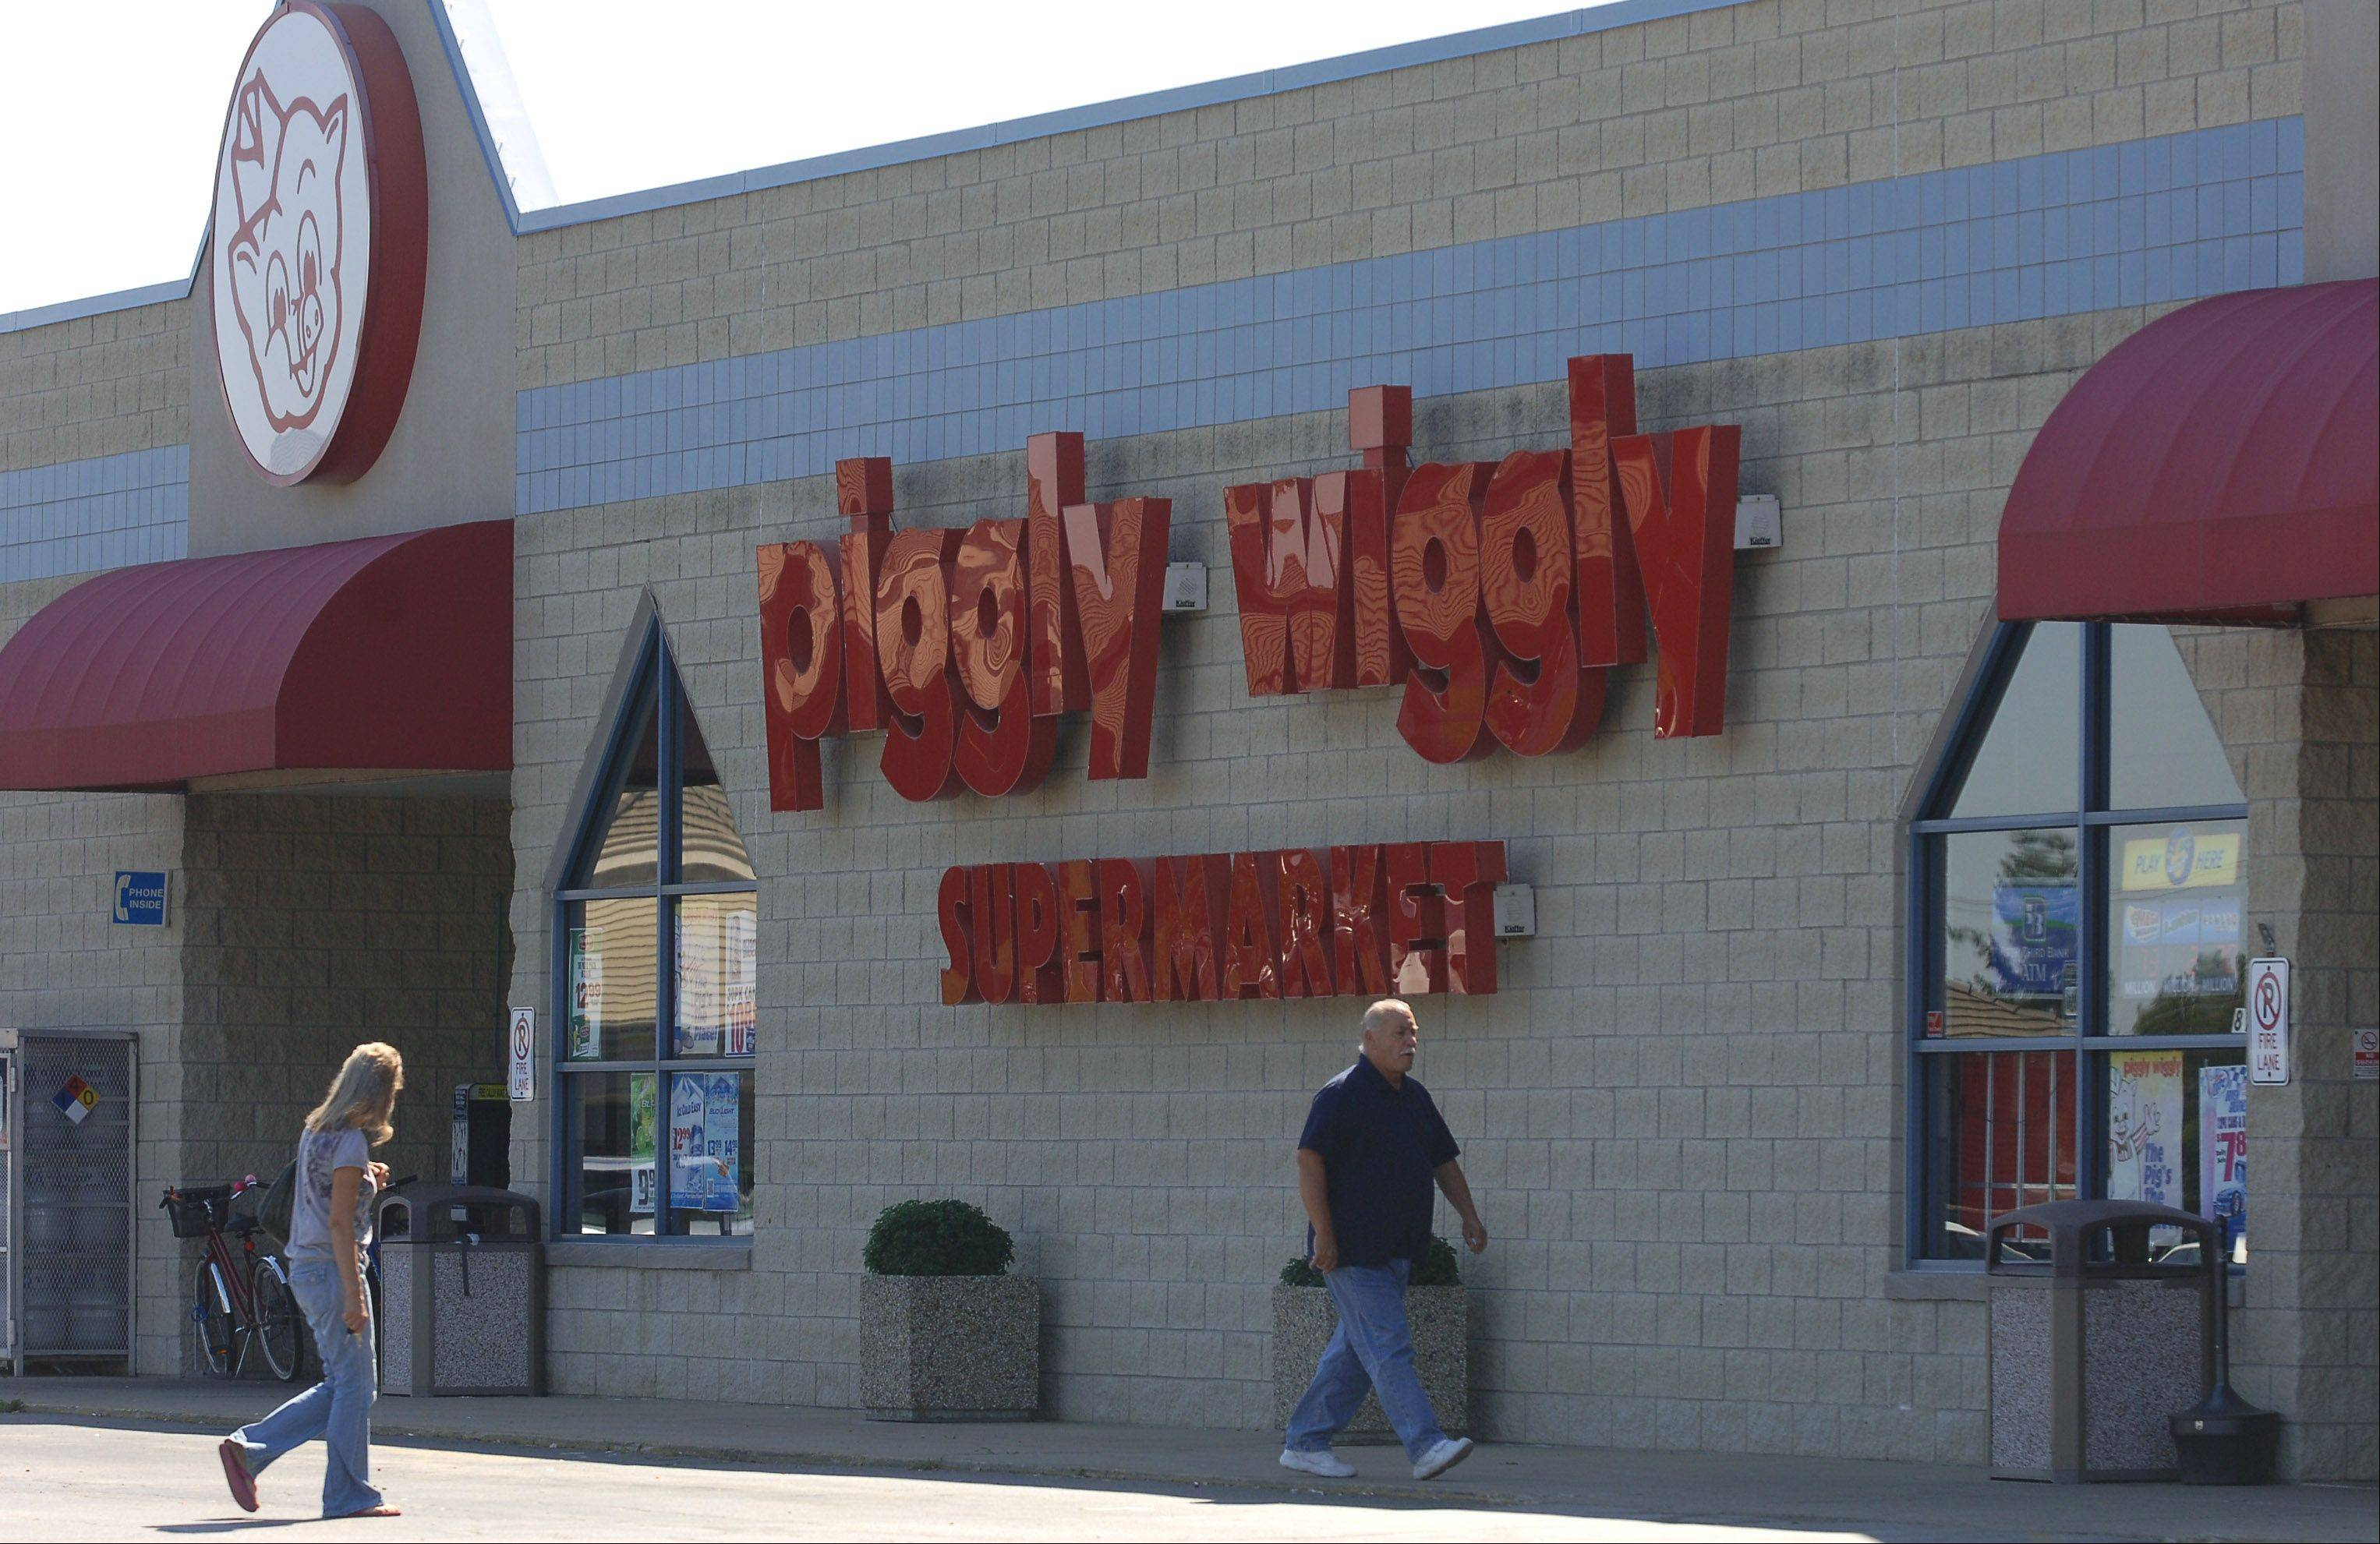 Grayslake�s Piggly Wiggly is scheduled to close Nov. 3 because of failed lease negotiations between the supermarket and its landlord.